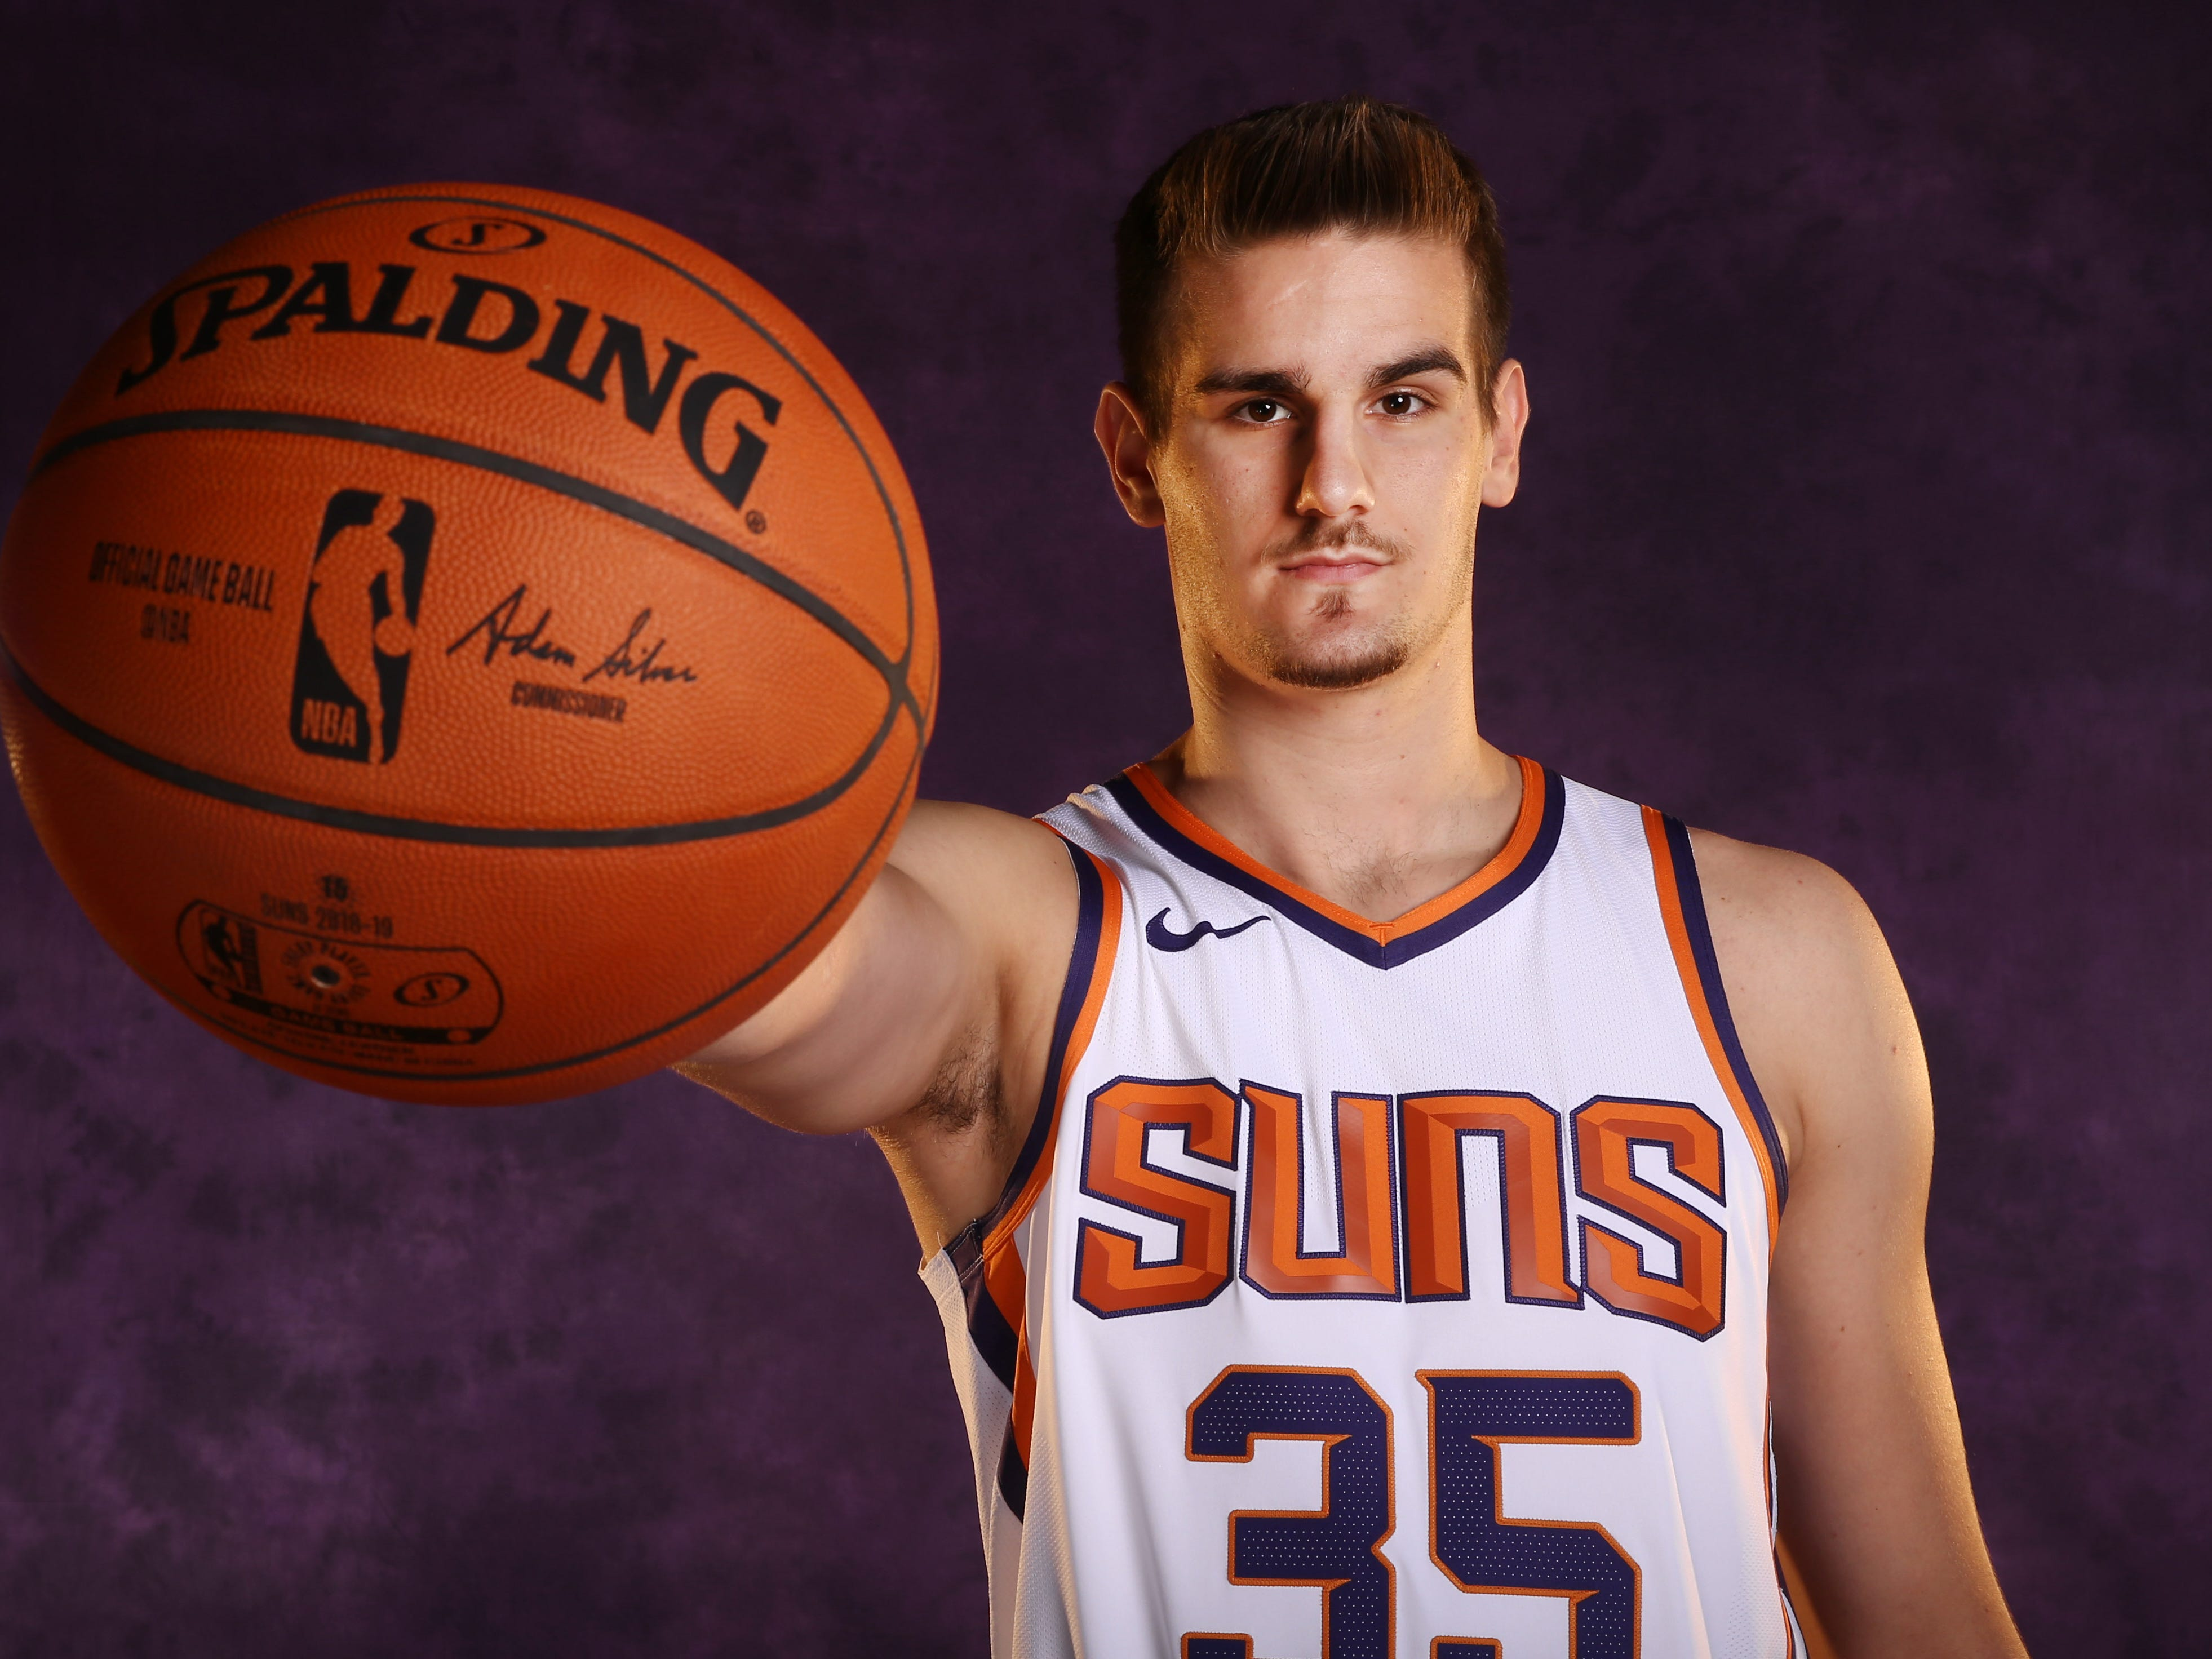 Dragan Bender || Position: Forward || Height/Weight: 7-1, 225